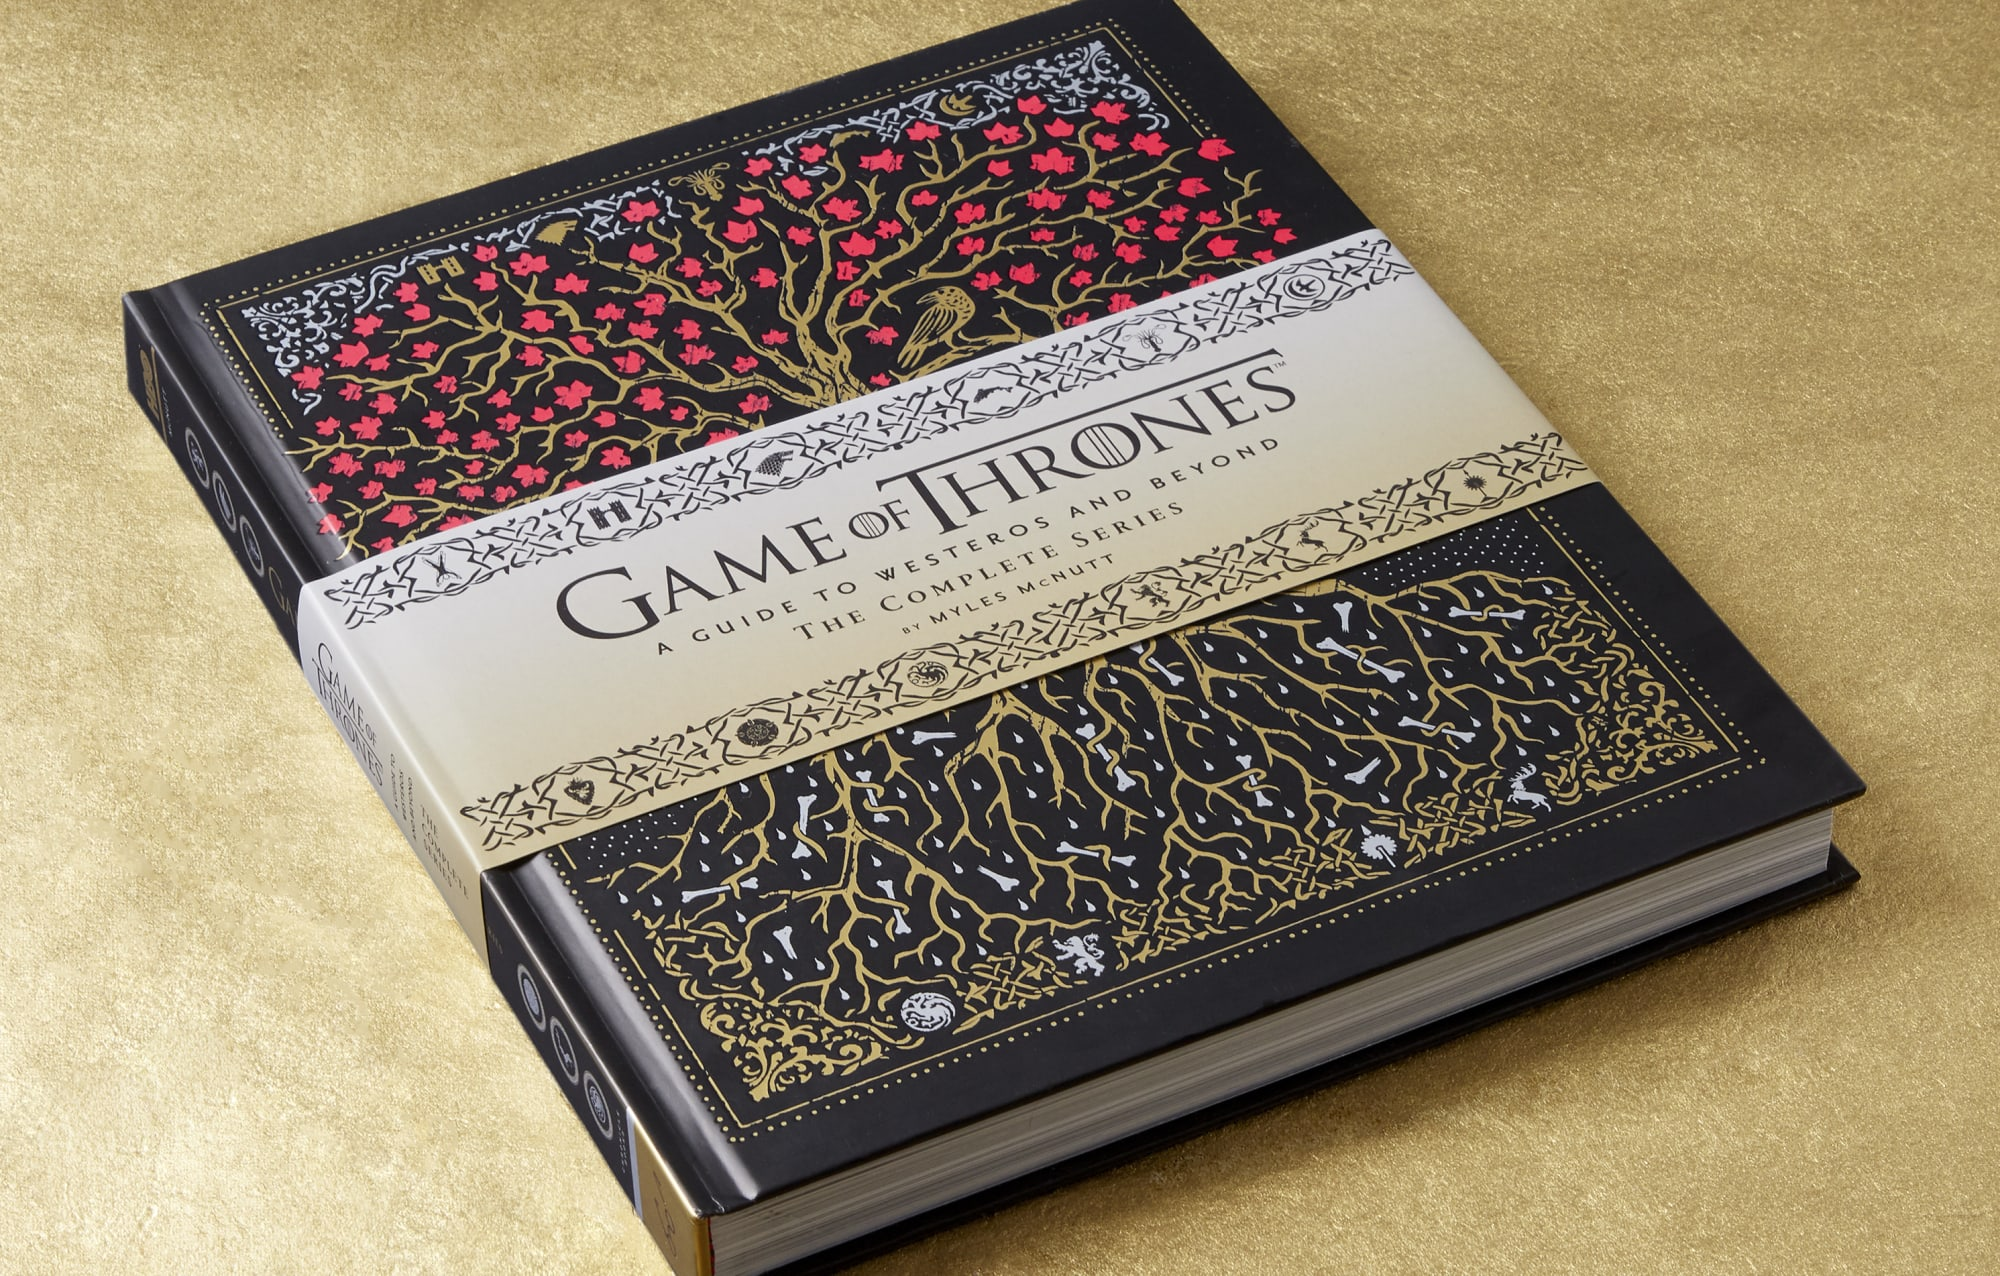 """""""Not just large-scale battles but Games of Thrones also offers books like A Feast of Ice and Fire, providing some fine dines that go on every occasion."""